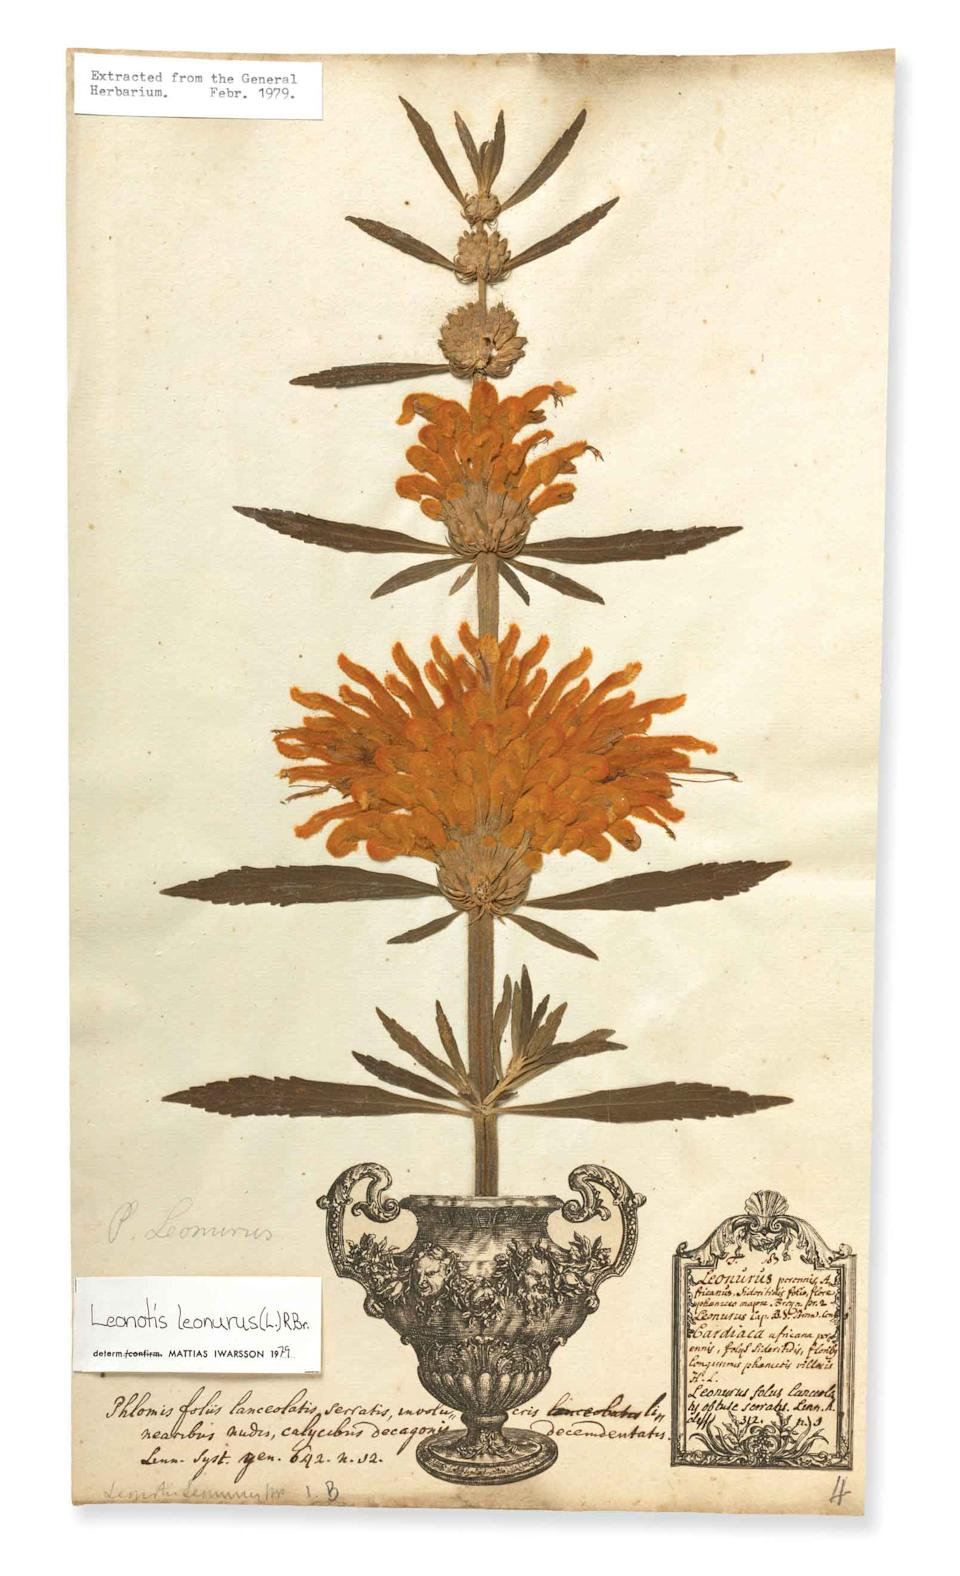 George Clifford's herbarium sheet – this early collection of dried and pressed plants helped young Swedish scientist Carl Linnaeus to devise a structure for naming specimens. Linnaeus is considered the 'father of modern botany' and his system of classification is still in use today. (Natural History Museum)